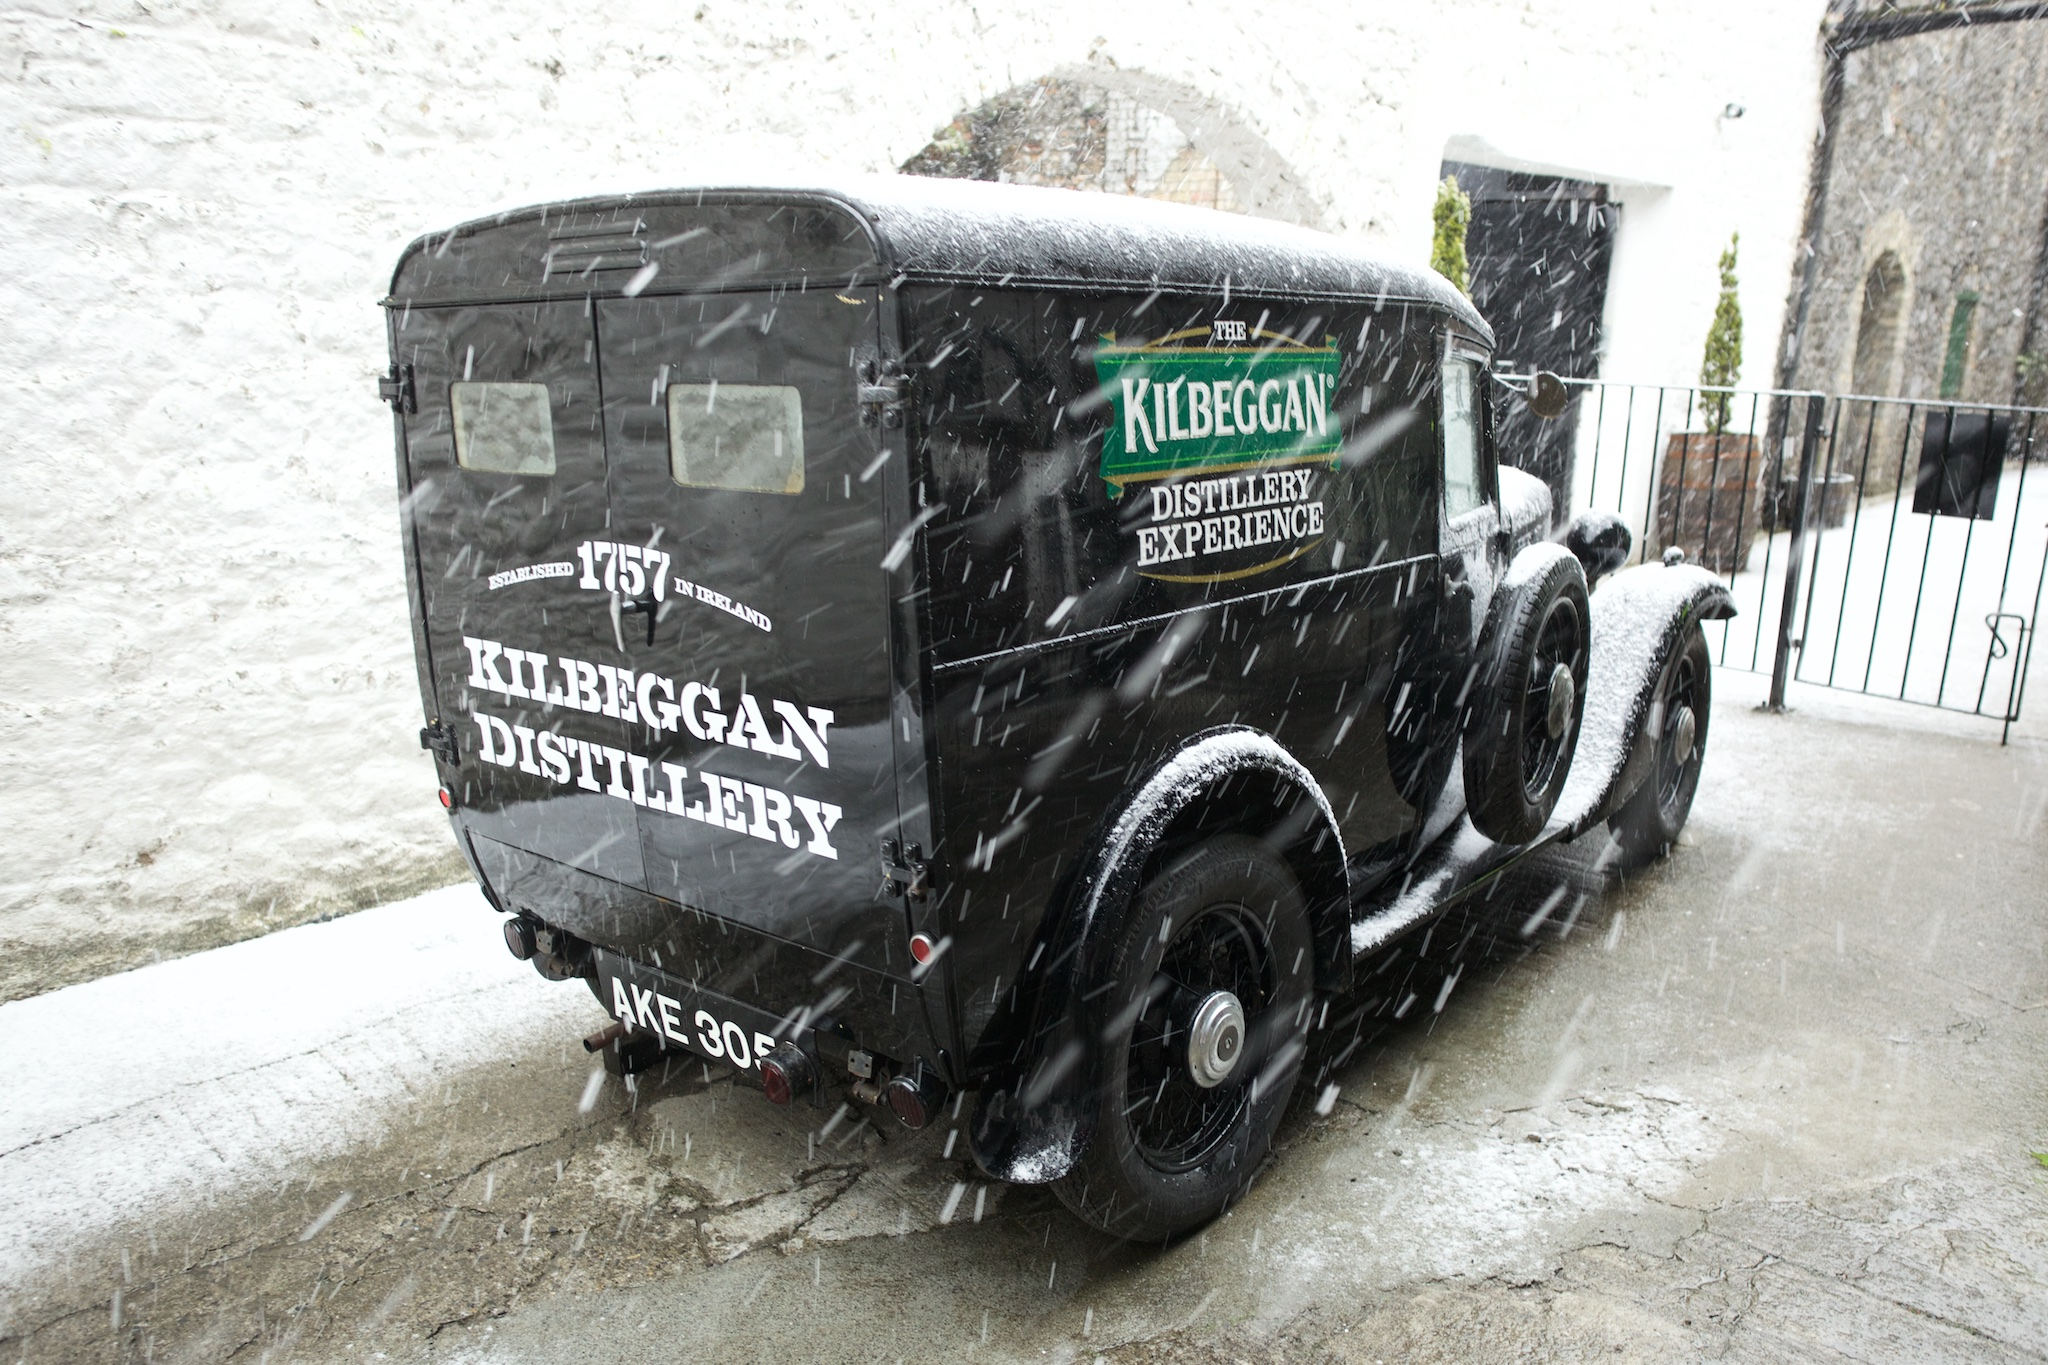 Old whiskey delivery truck, Kilbeggan, Ireland